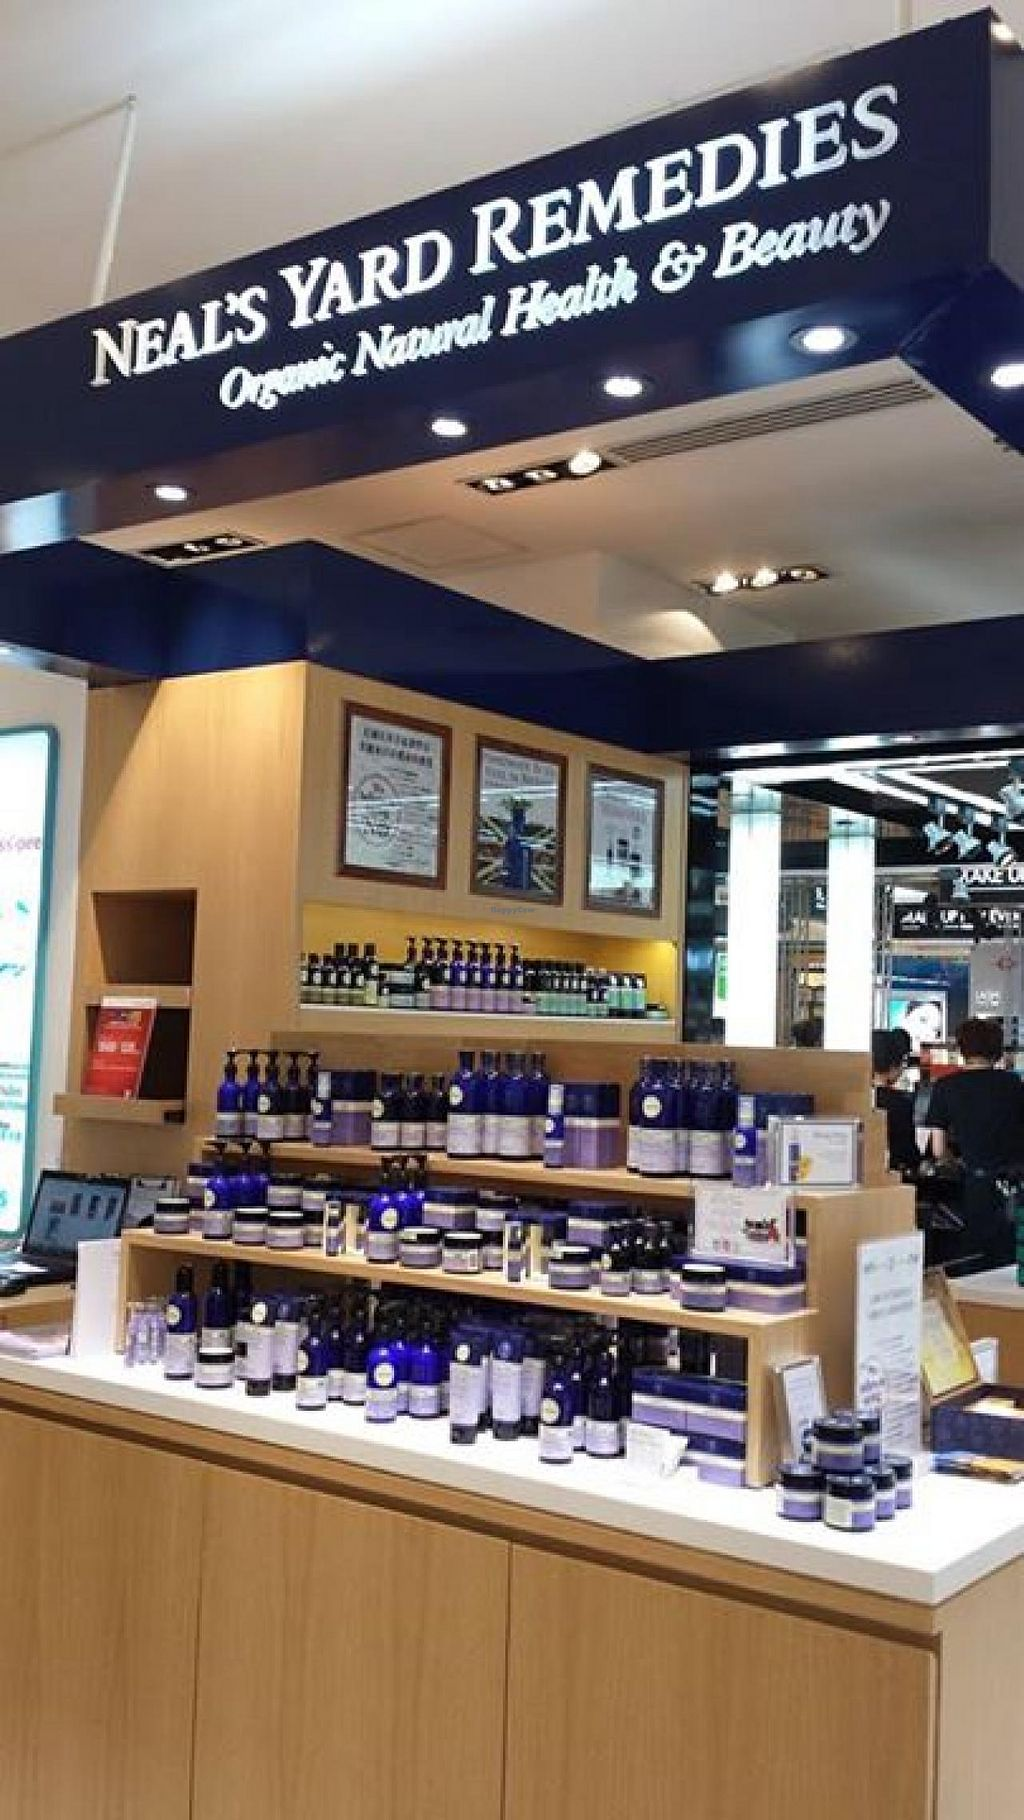 """Photo of Neal's Yard Remedies - Central  by <a href=""""/members/profile/community"""">community</a> <br/>Neal's Yard Remedies - Central <br/> March 19, 2015  - <a href='/contact/abuse/image/56334/96211'>Report</a>"""